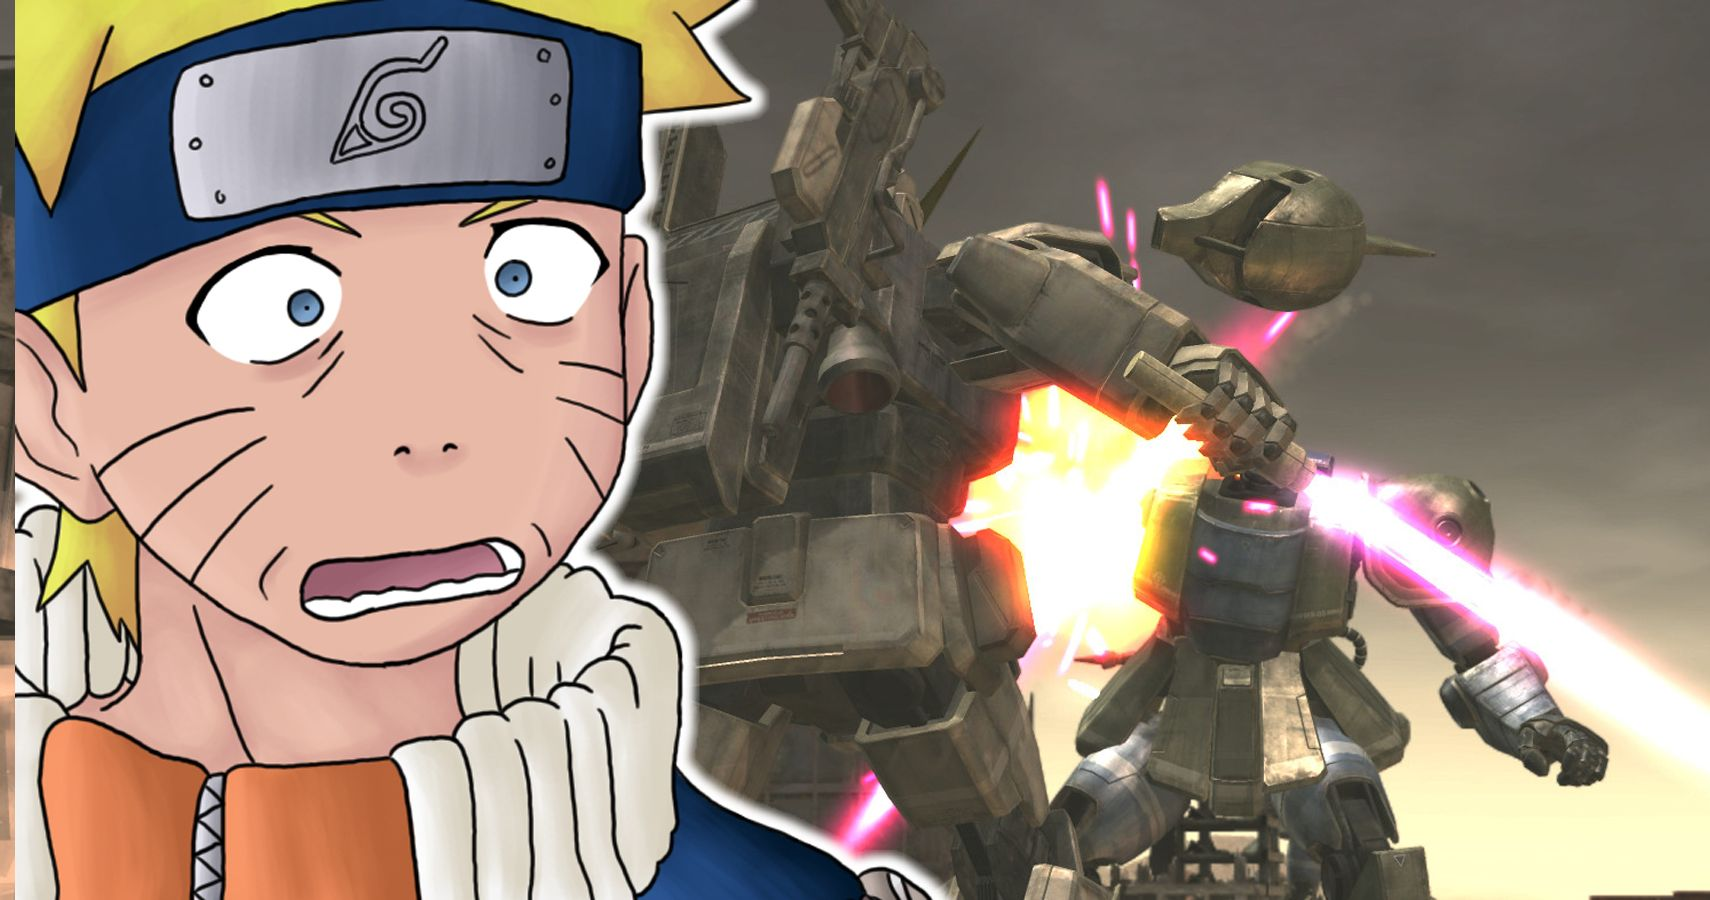 The 20 Lamest Anime Video Games Ever (And The 10 Best